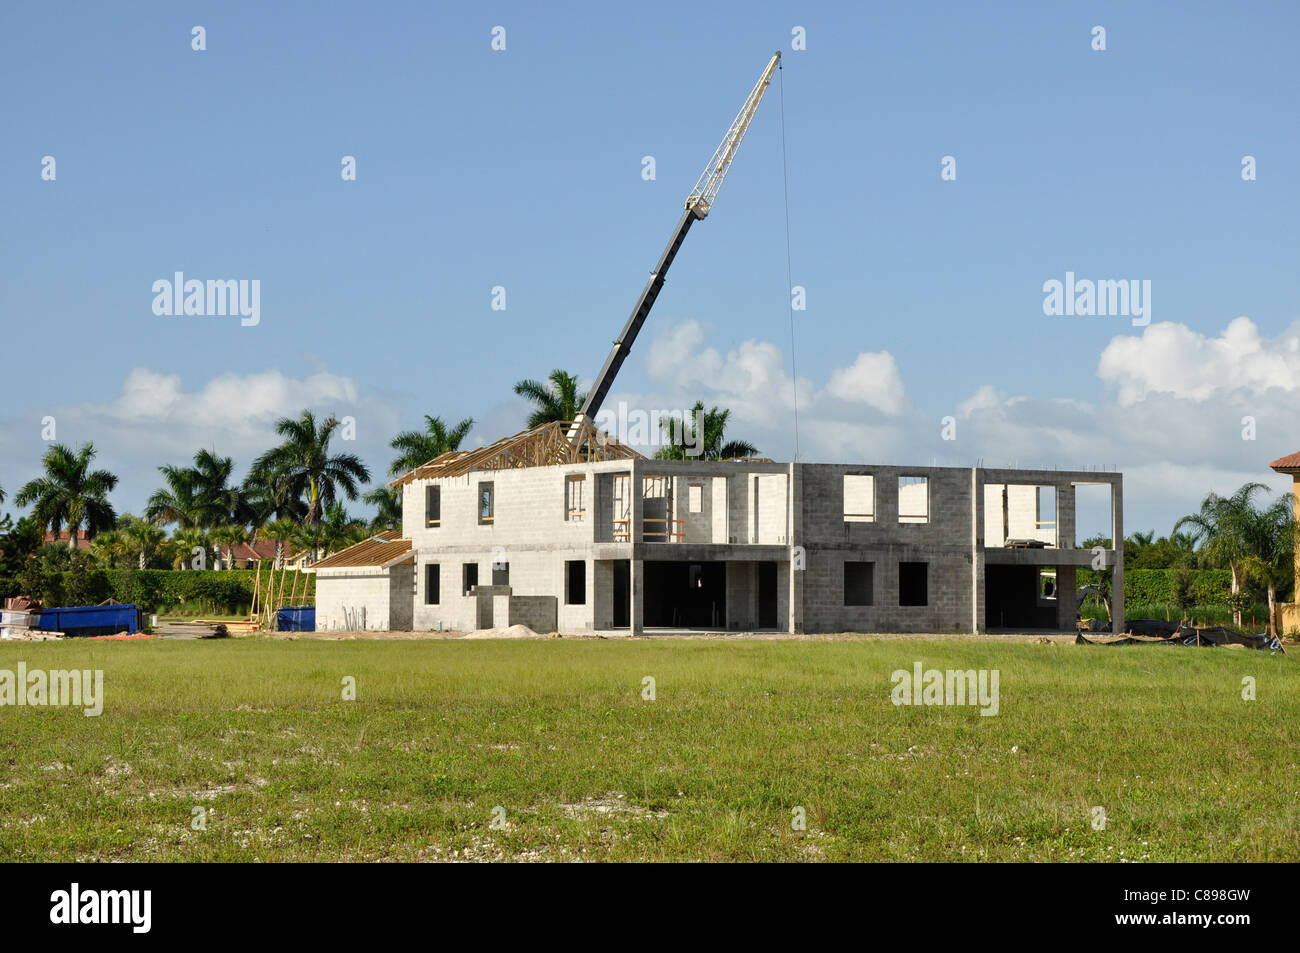 Construction of a large new home Stock Photo